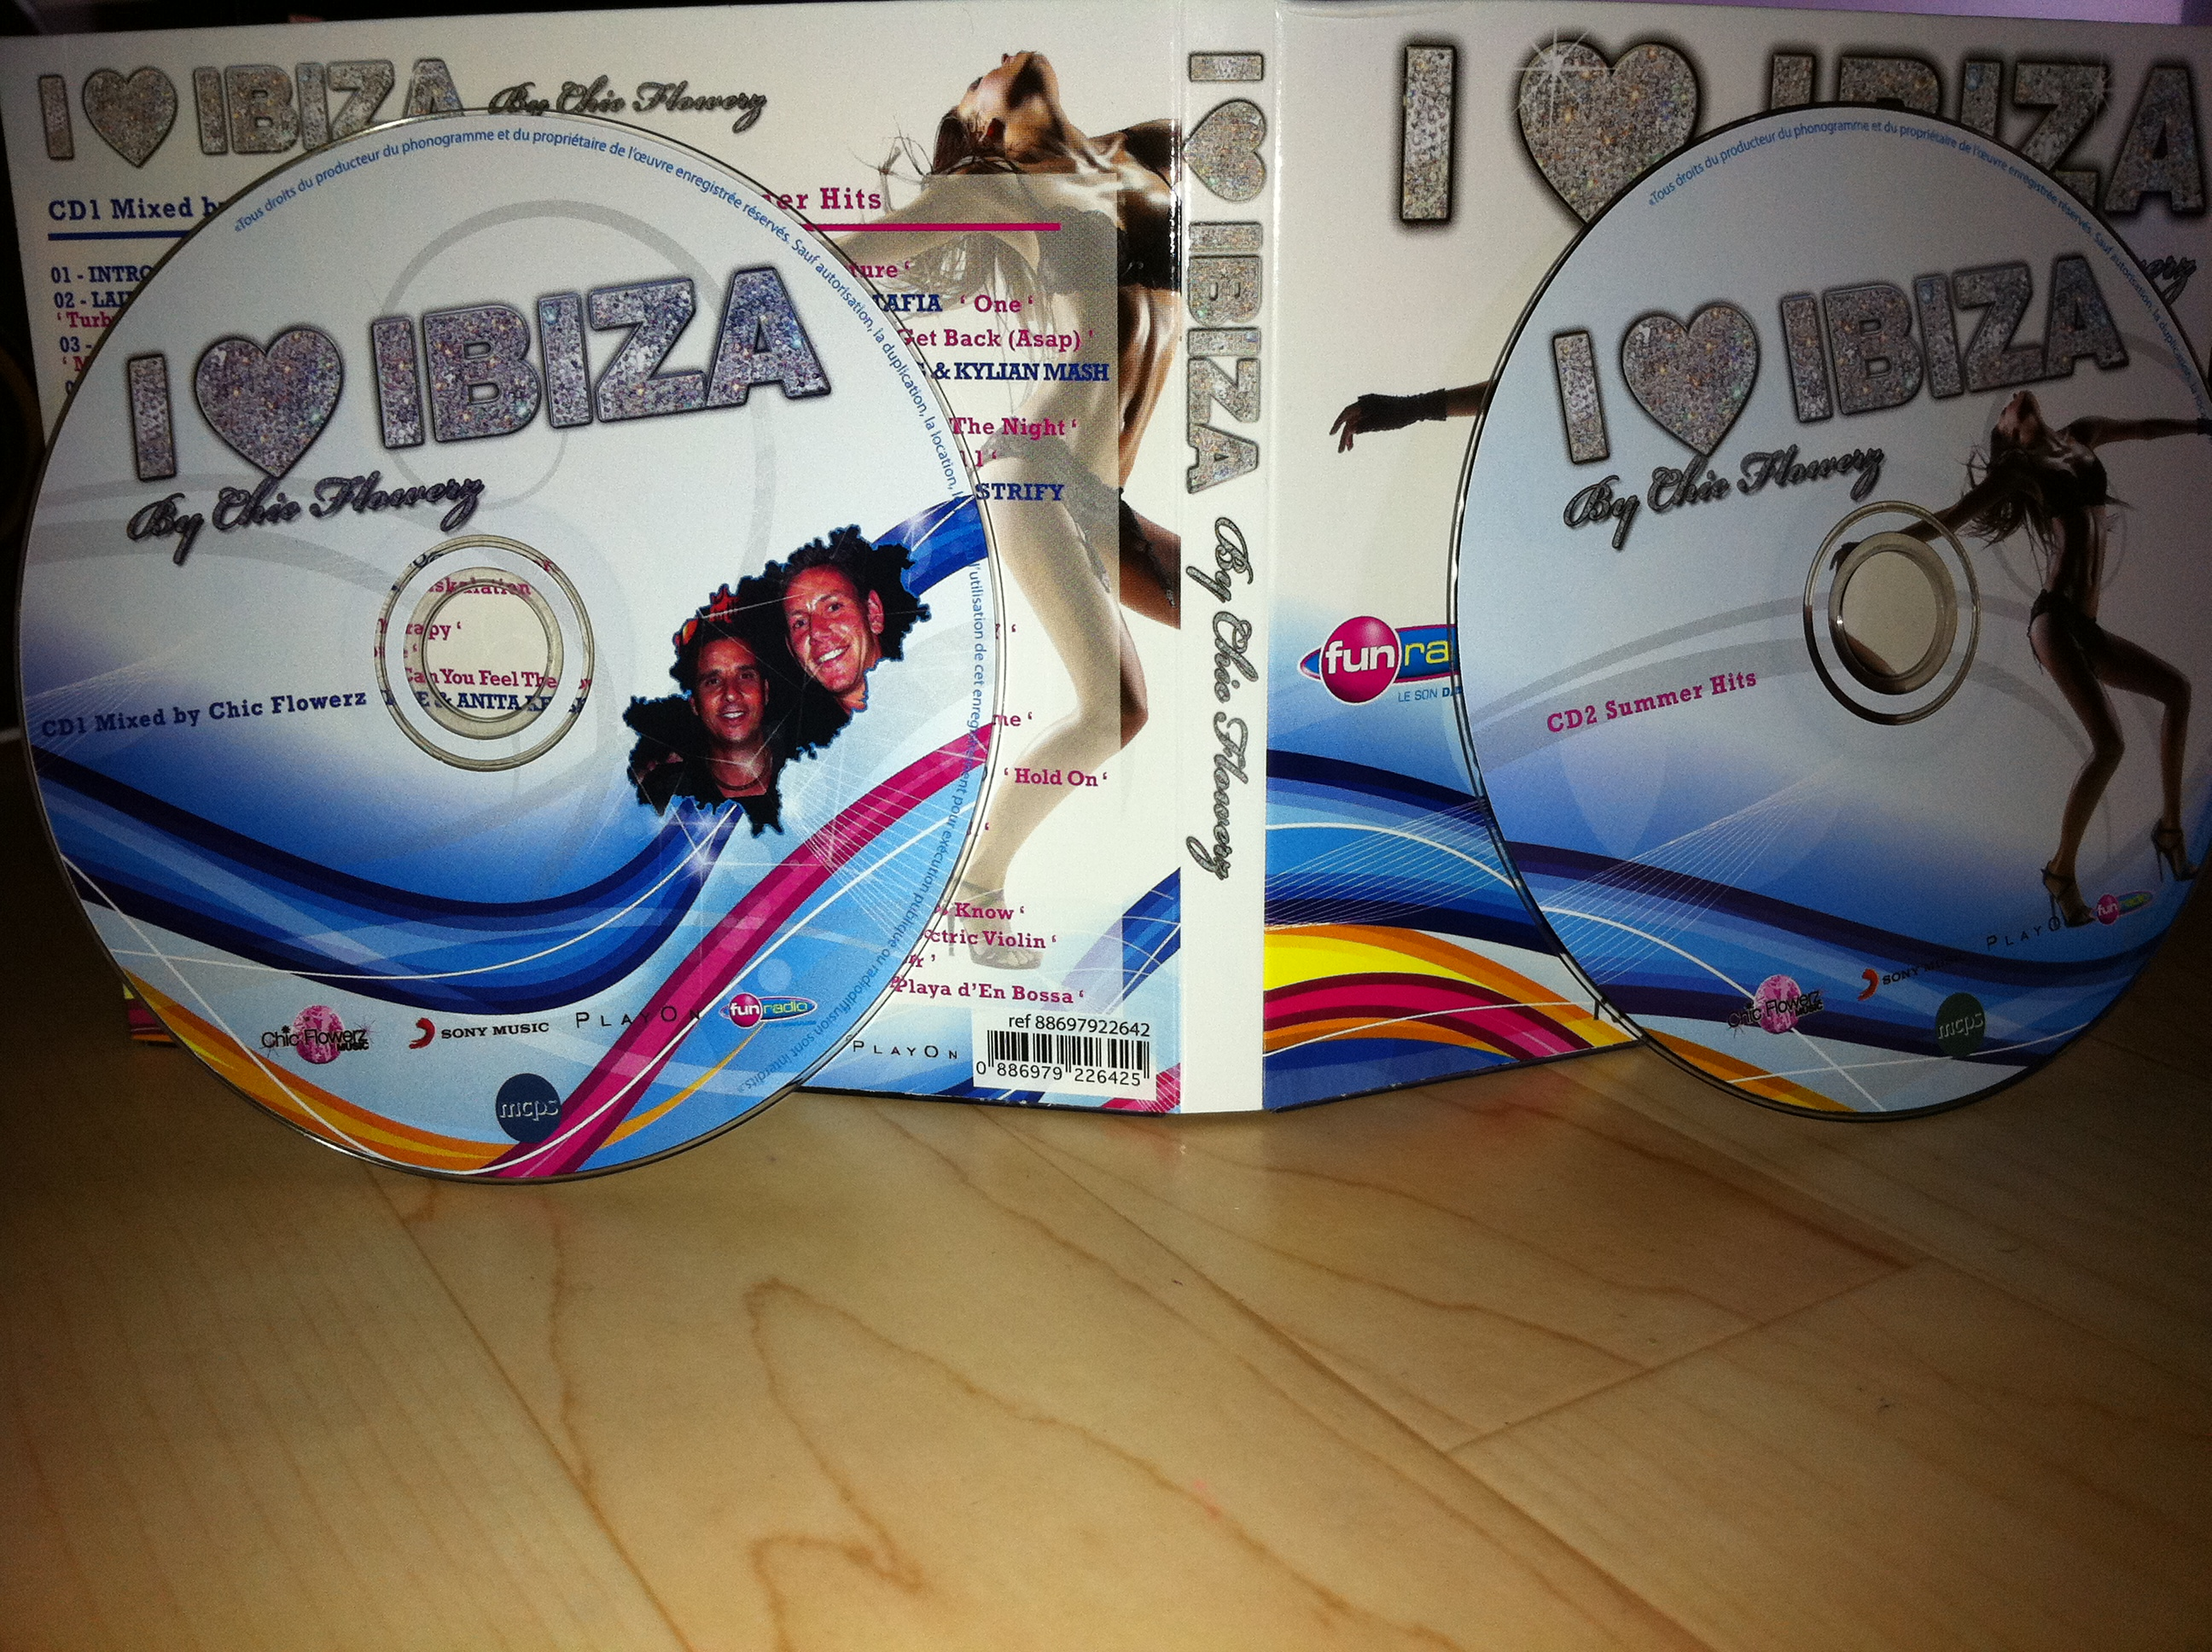 VA - I Love Ibiza (By Chic Flowerz) 2CD 2011 (CD ORIGINAL)